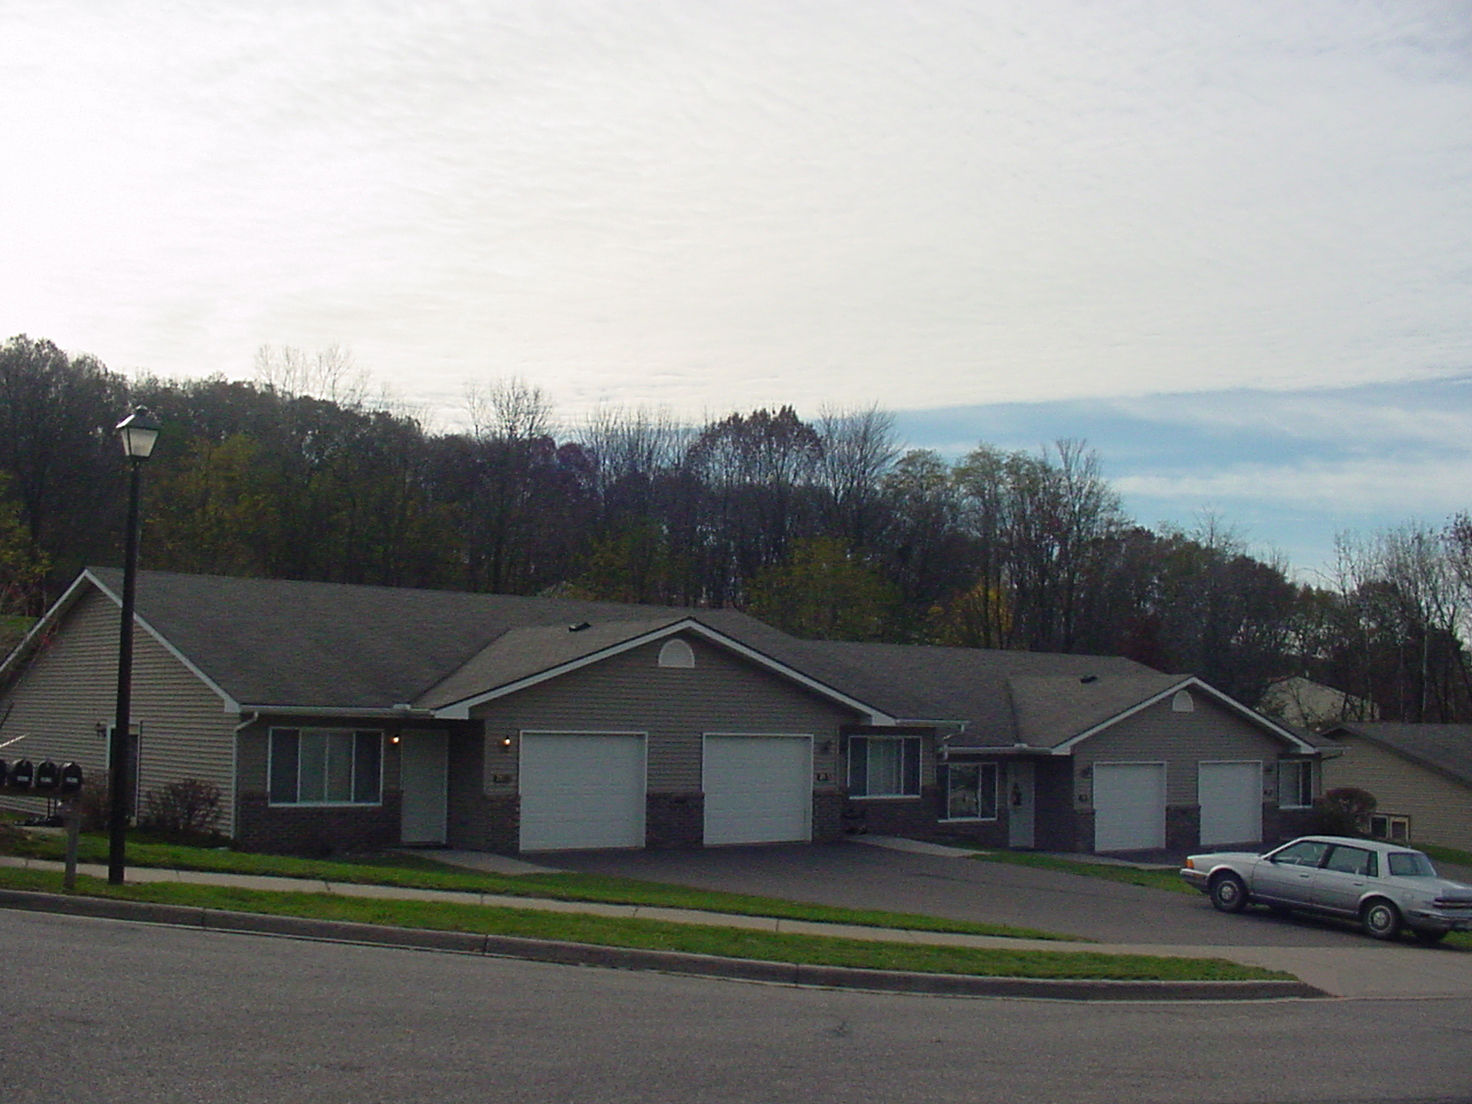 Outside view of a housing complex